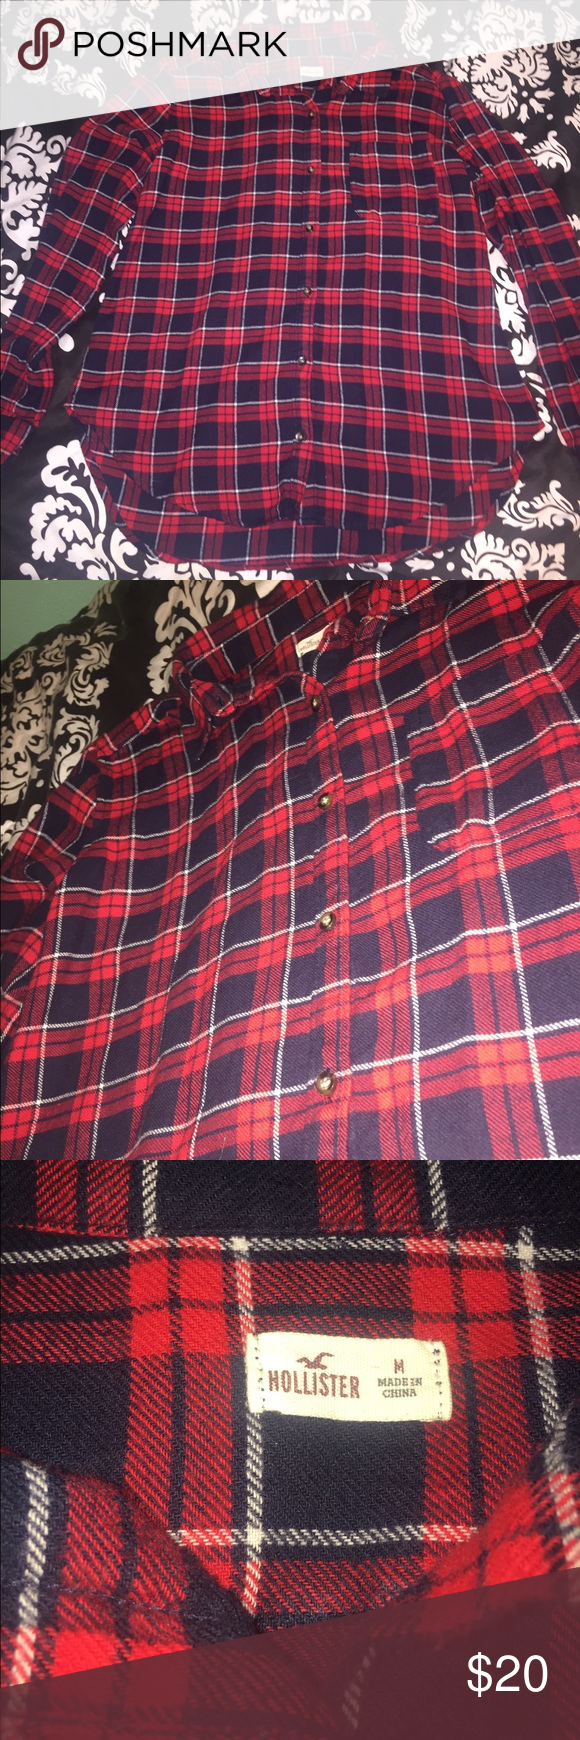 Hollister Flannel (M) Size Medium! Worn only twice. This is the most comfortable flannel EVER! It's so cozy and I love it, but I don't really wear it anymore. It's a combination of red, white, & navy. Hollister Tops Button Down Shirts